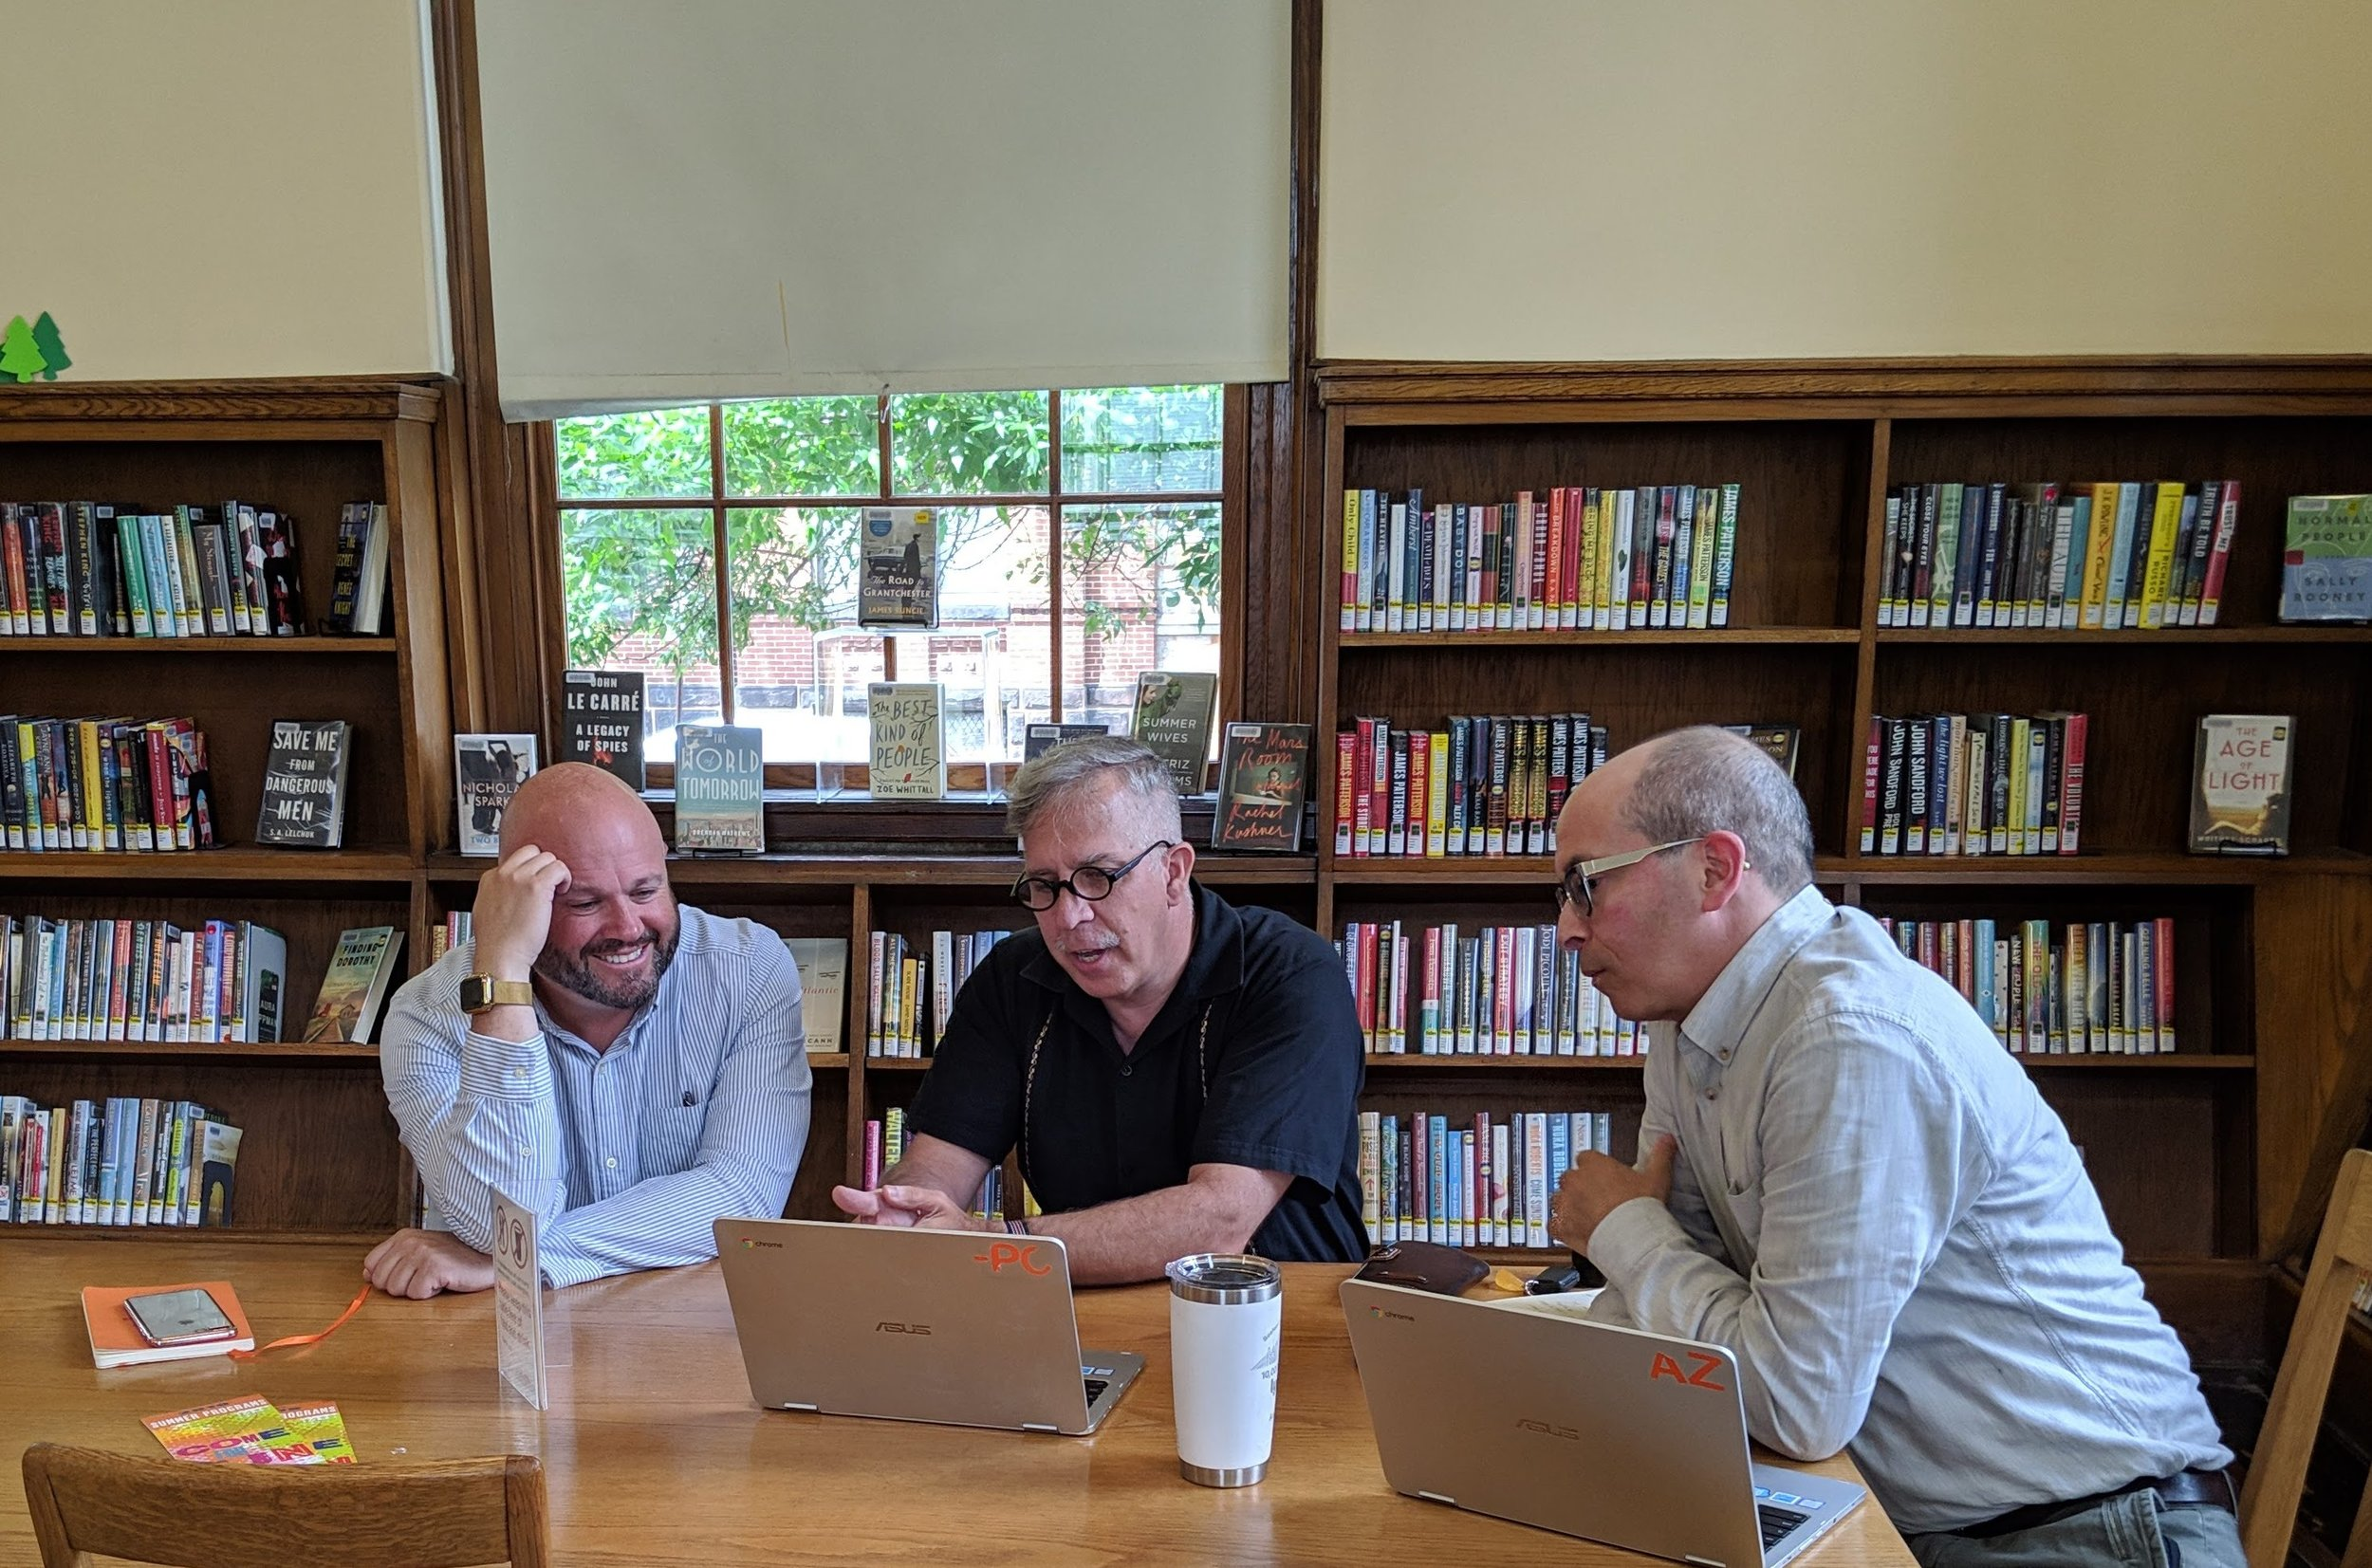 Hard at work in the O'Connell branch of the Cambridge Public Library.